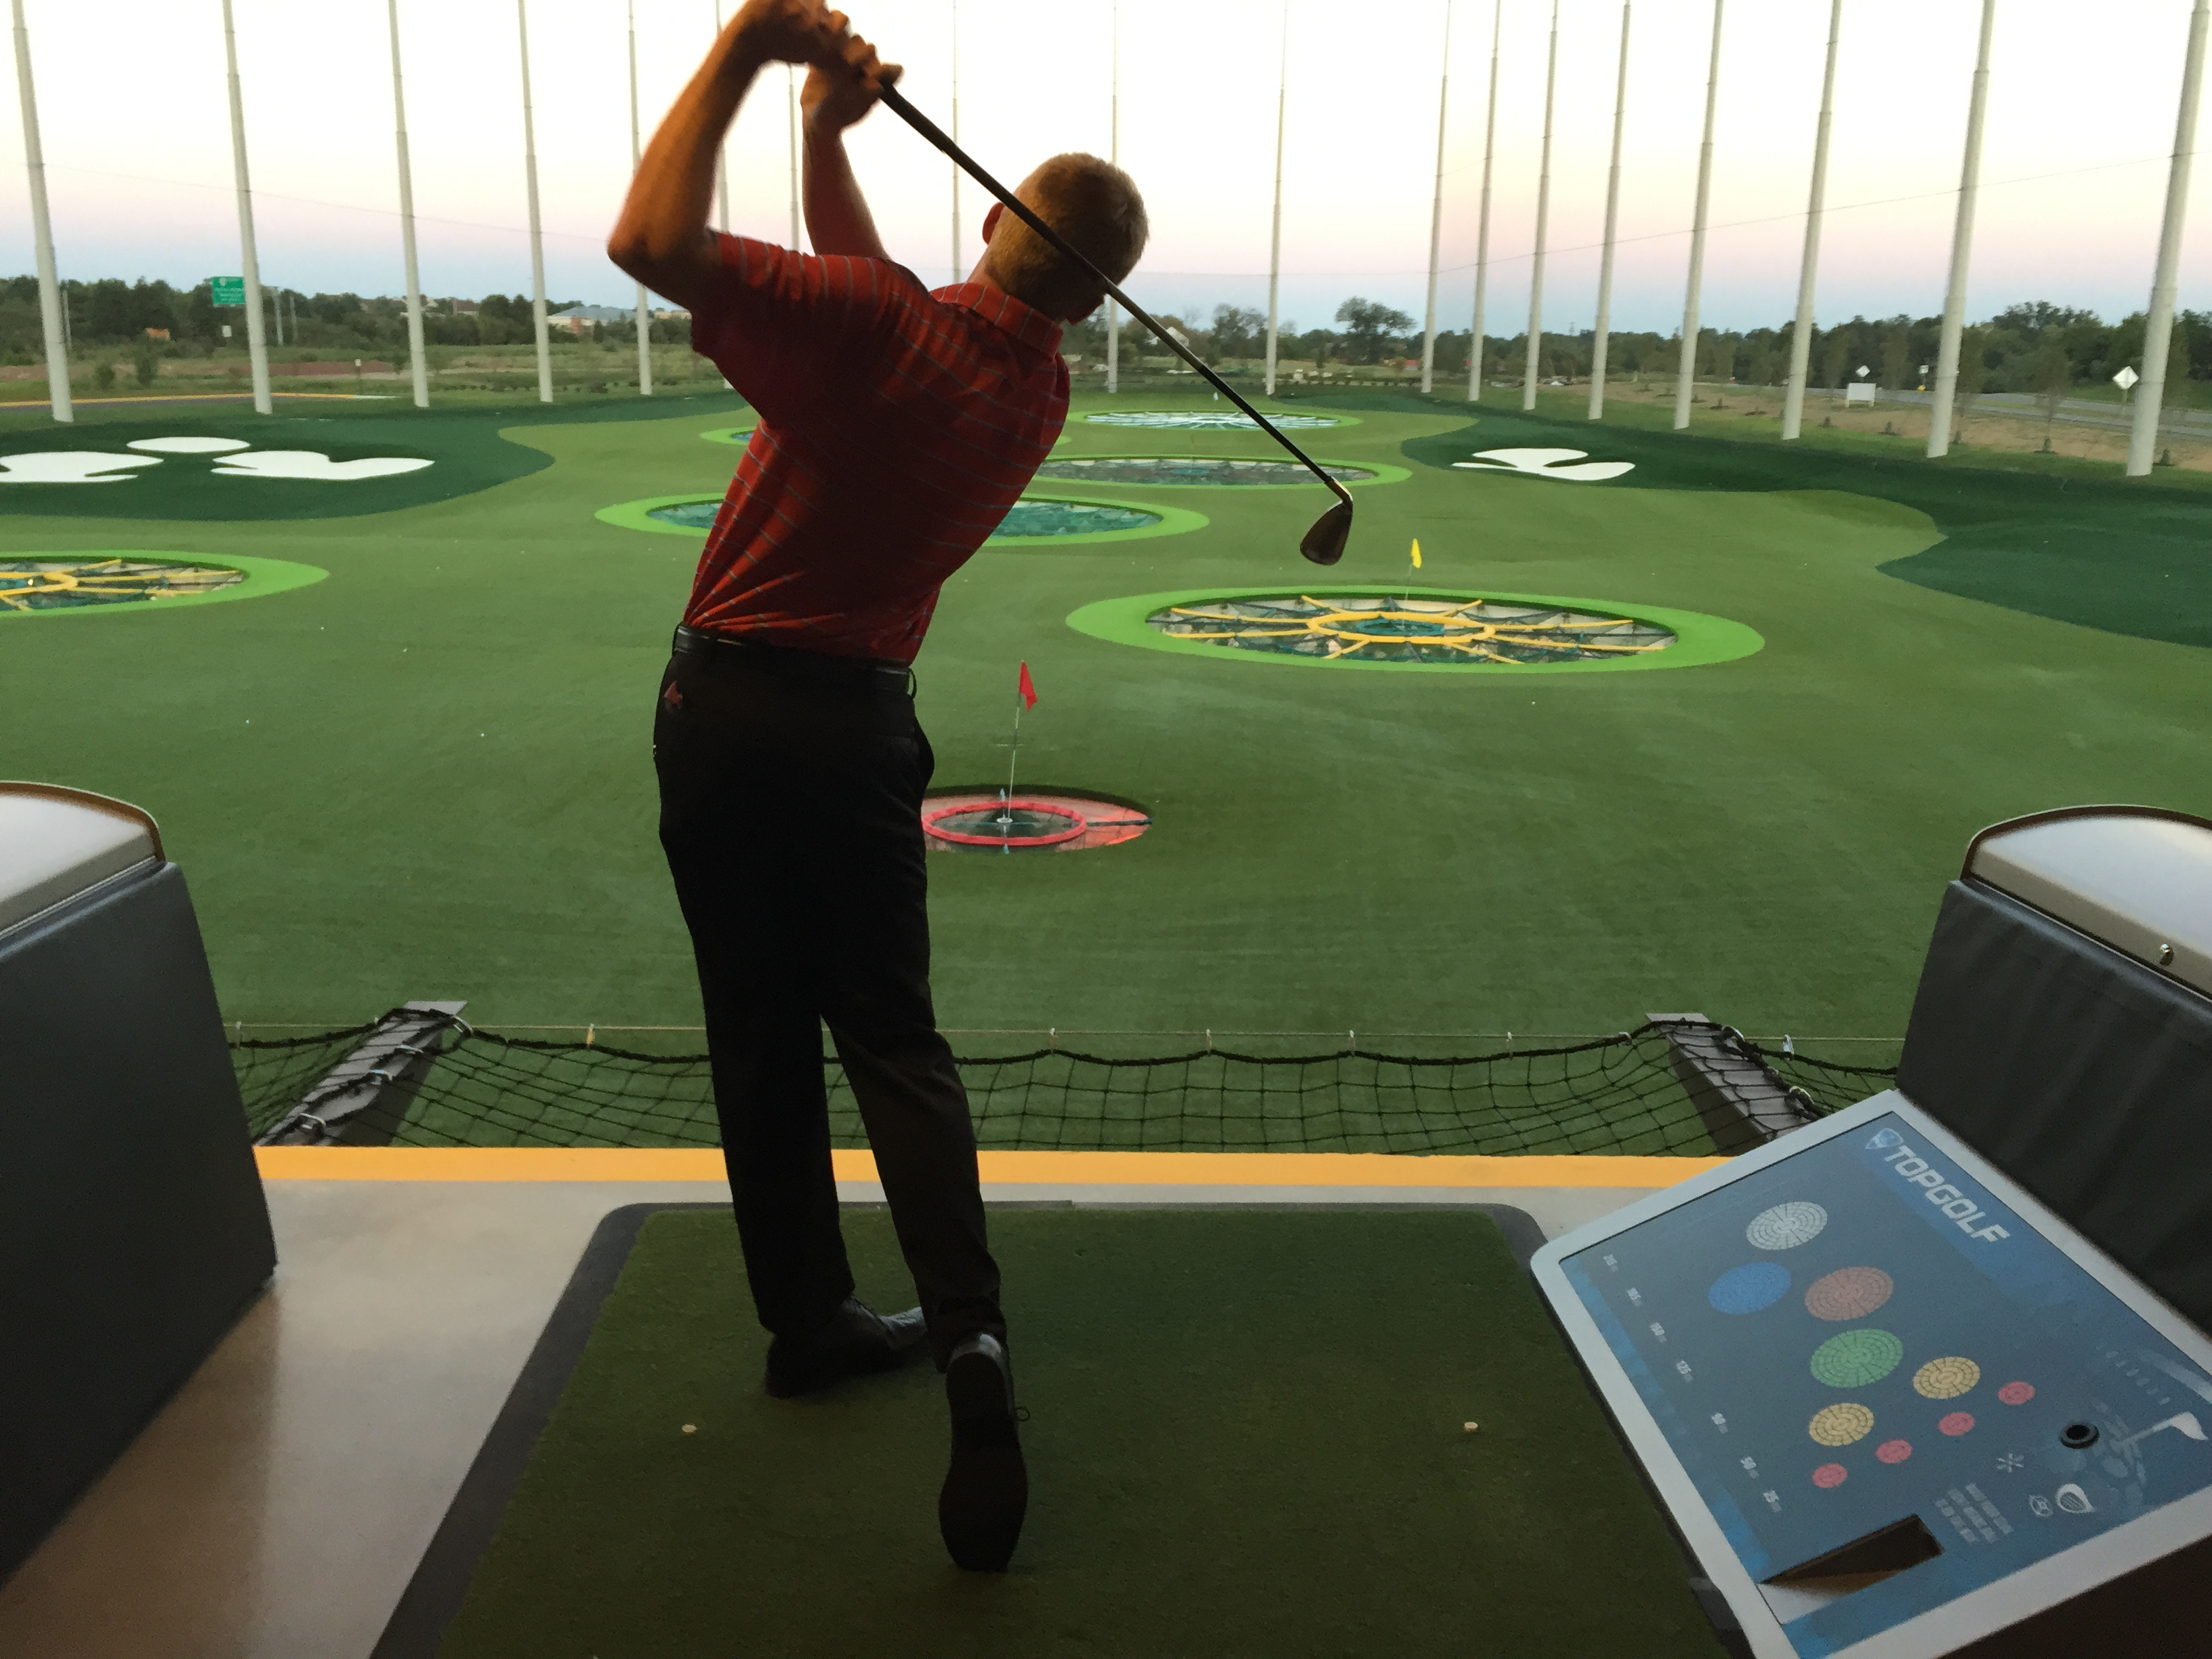 New Topgolf location offers high-tech golf and more